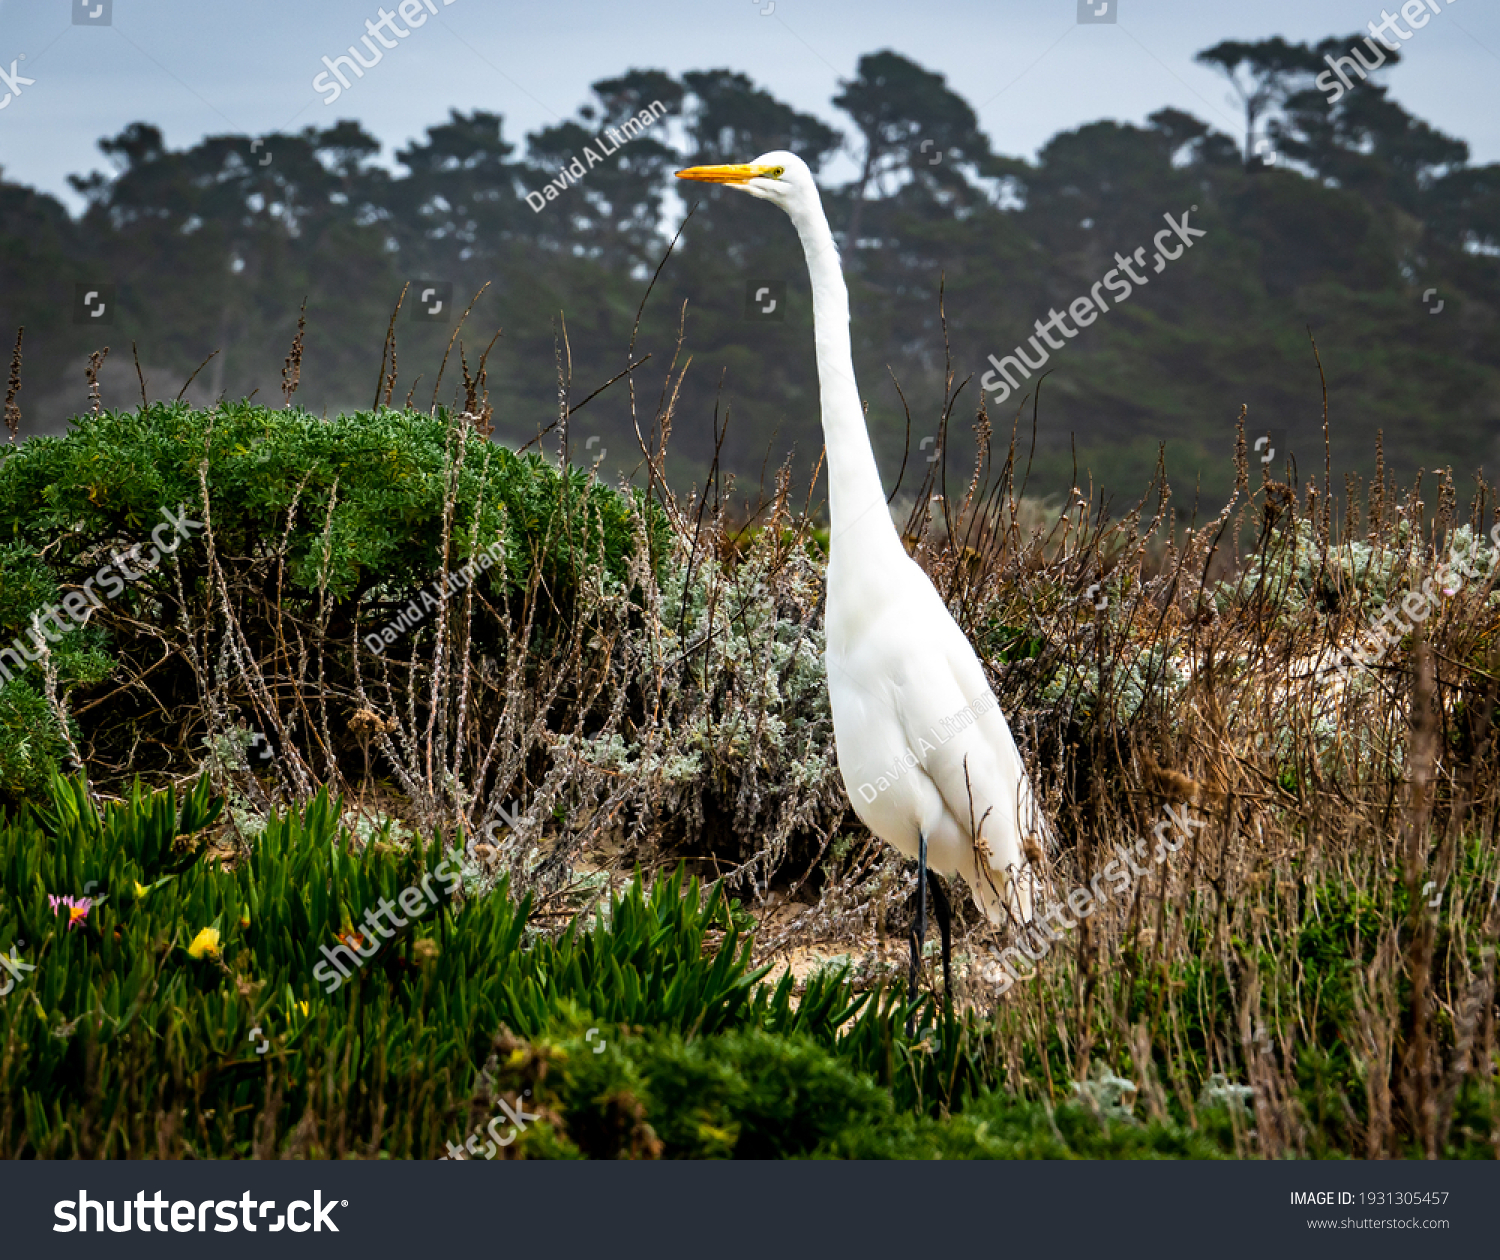 A Great White Heron (Egret) stands among protected sand dunes at Asilomar State Park and Beach along the Monterey Bay of the pacific central coast of California. Monterey Cypress trees in background.